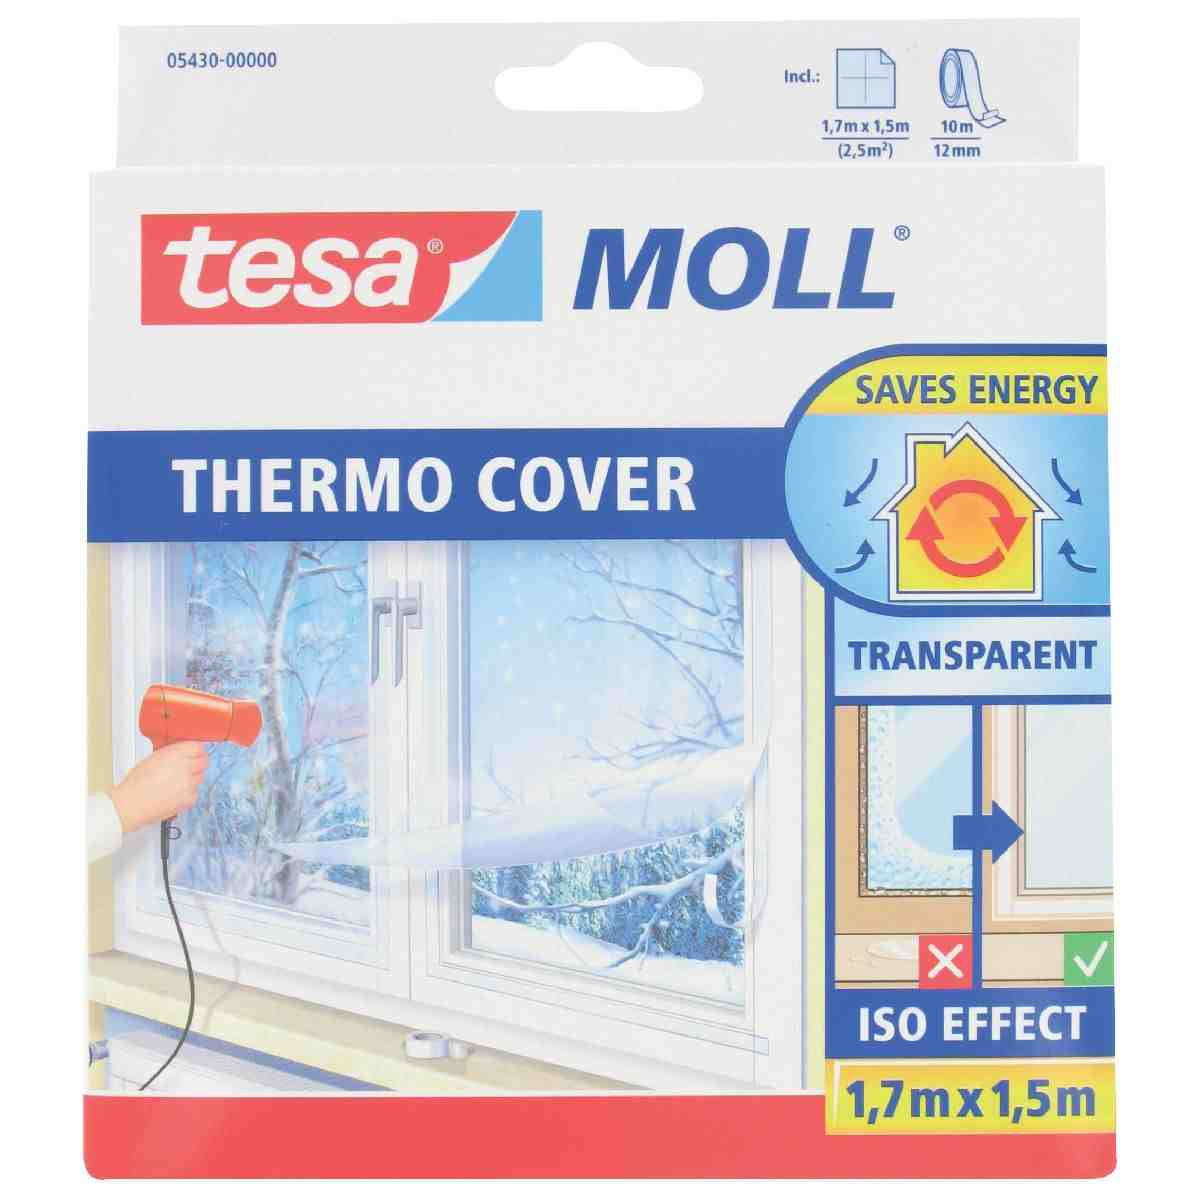 Film de survitrage thermo cover tesa longueur 4 m largeur 1 5 m de film d - Film isolant de survitrage ...